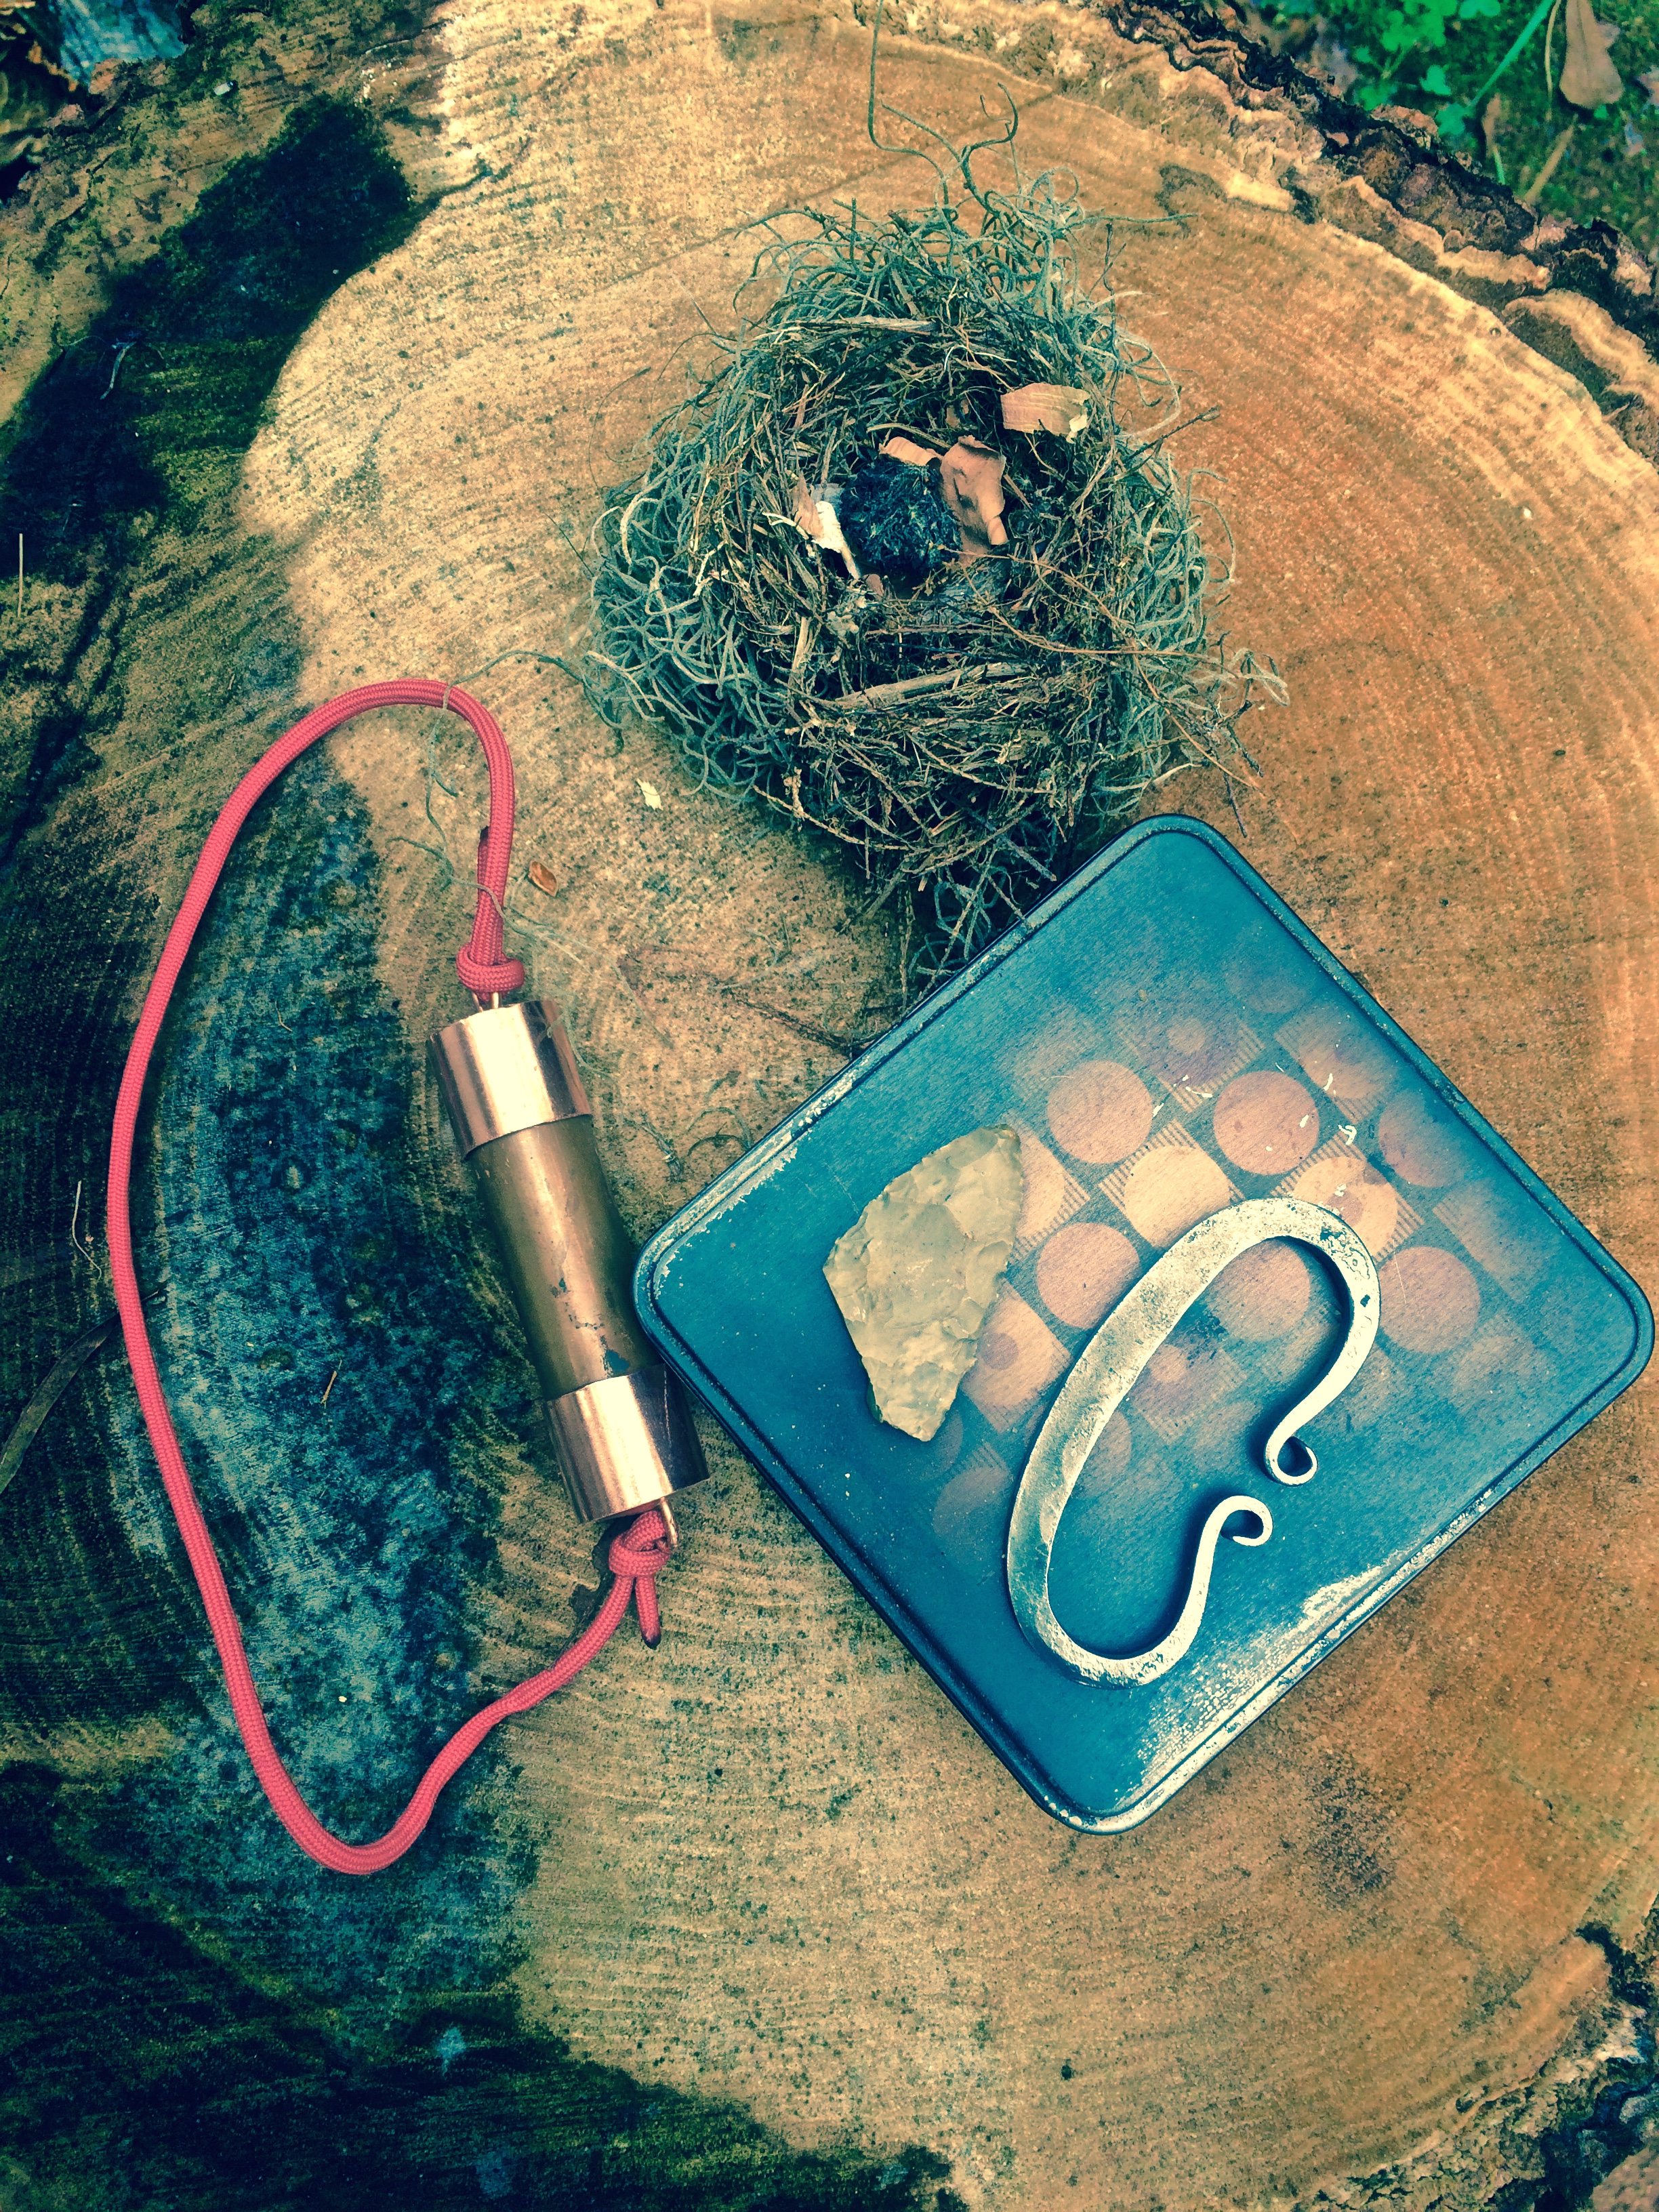 How To Make A Pocket Tonteldoos Tinderbox For Flint And